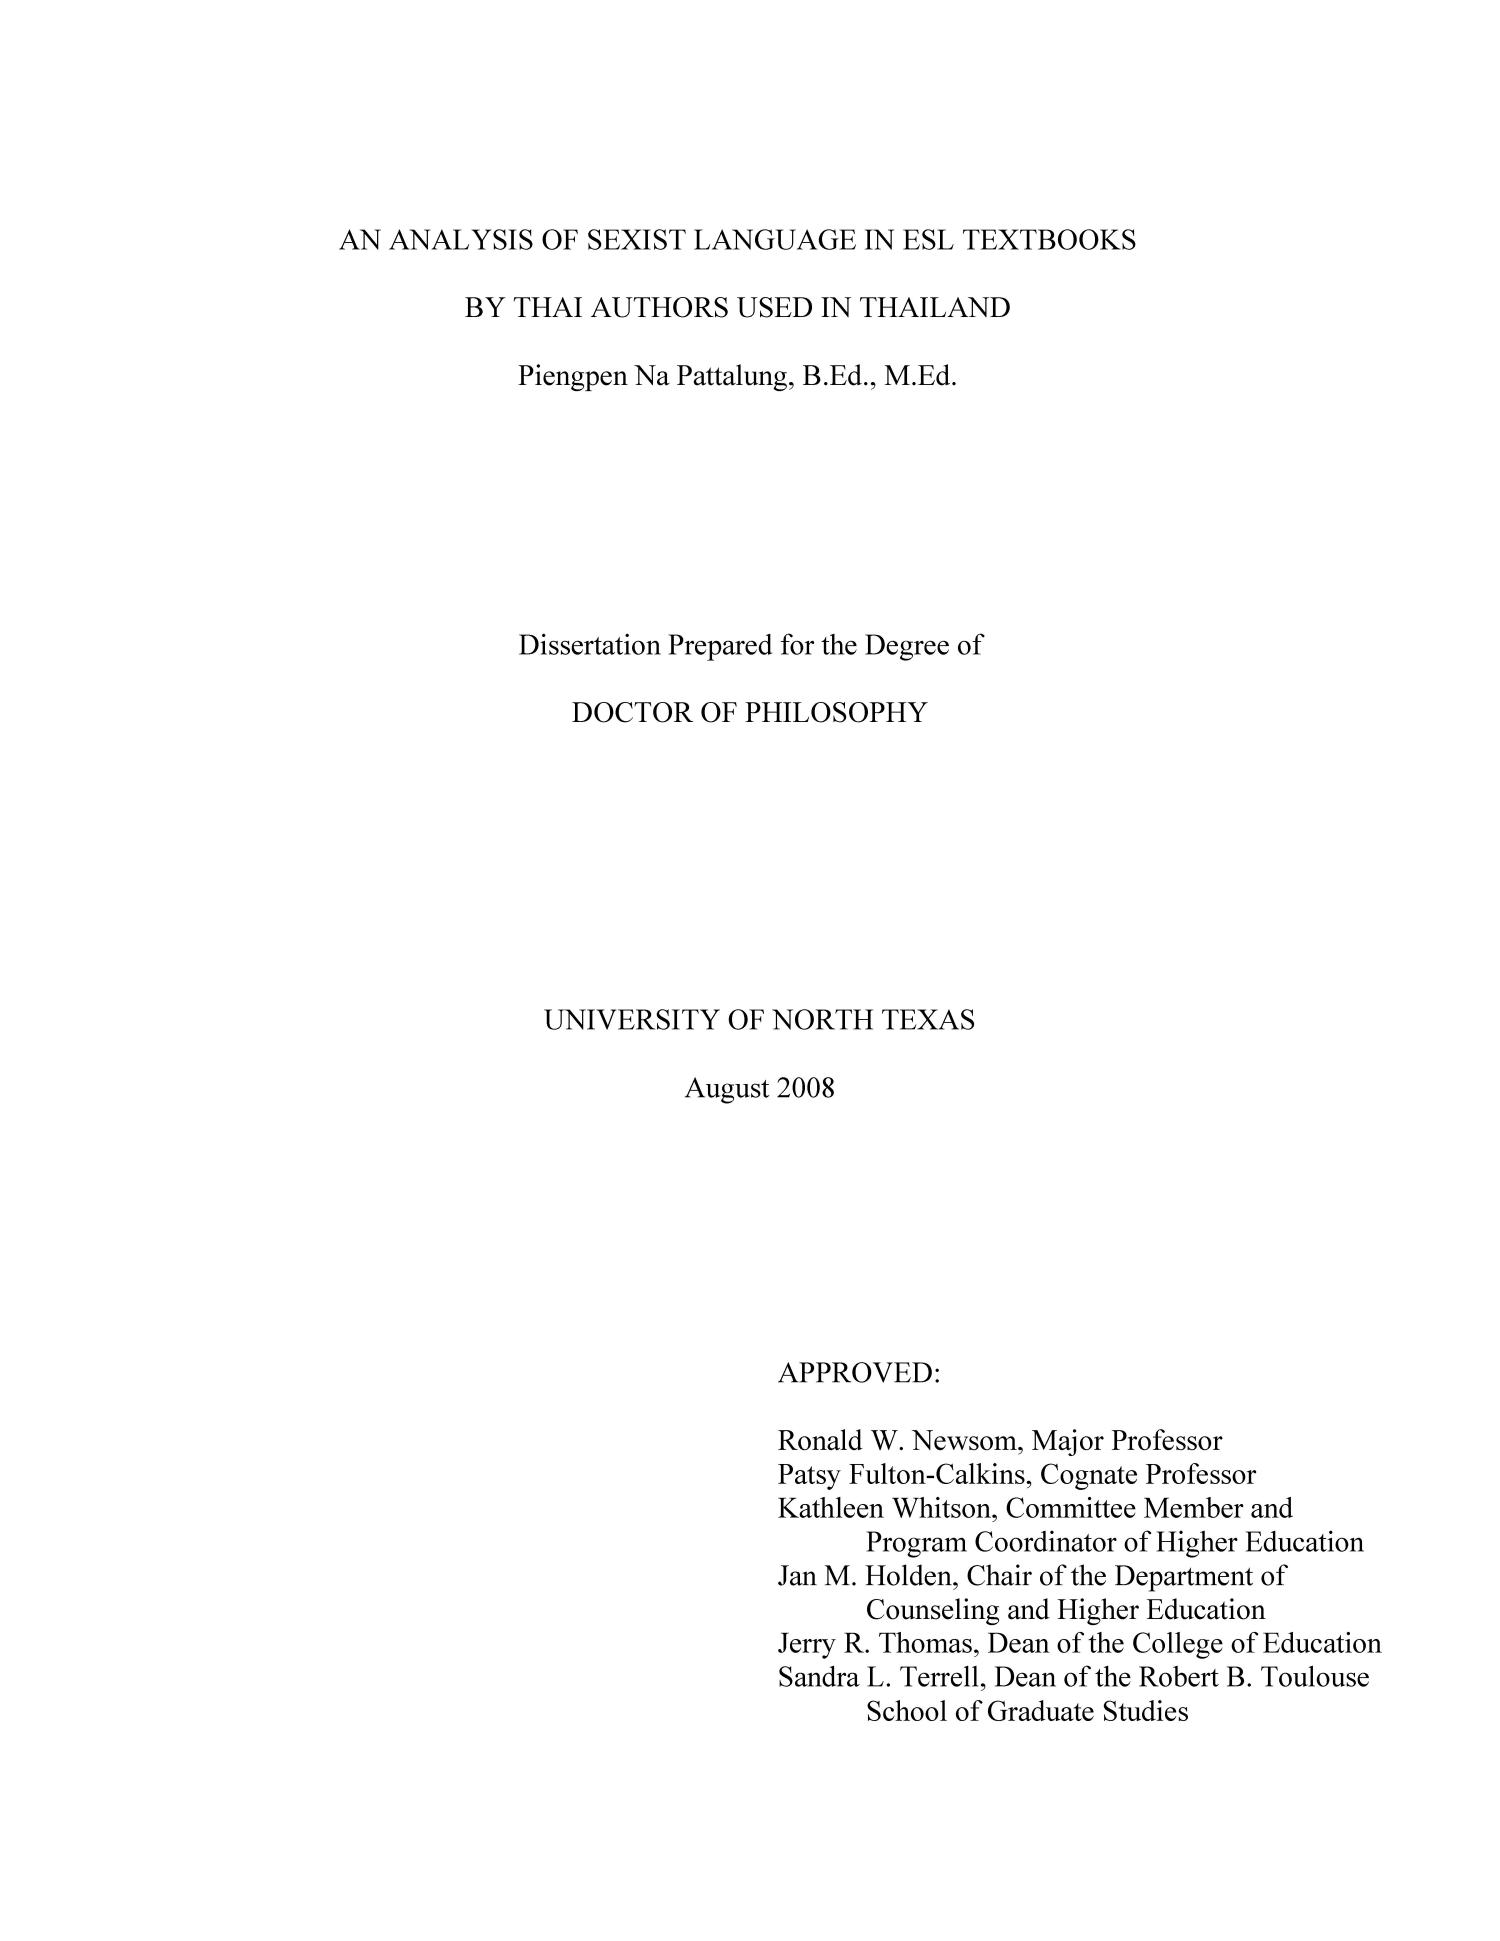 thailand dissertation The impact of medical tourism on the domestic economy and private health system: a case study of thailand thinakorn noree thesis submitted in accordance with the requirements for the degree of degree of doctor of philosophy of the university of london june 2015.